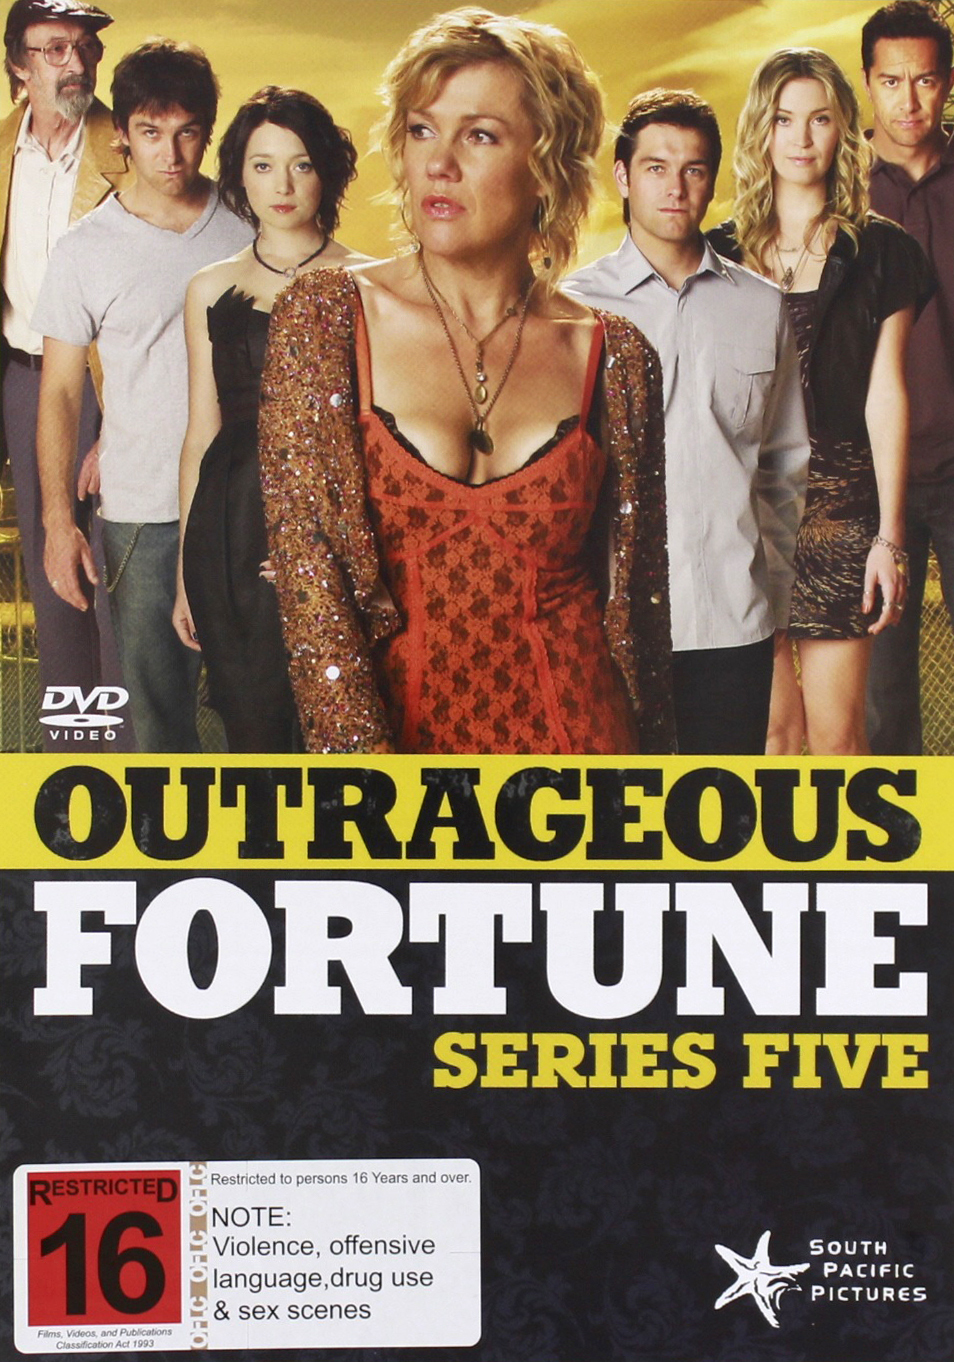 Outrageous Fortune - Series Five on DVD image